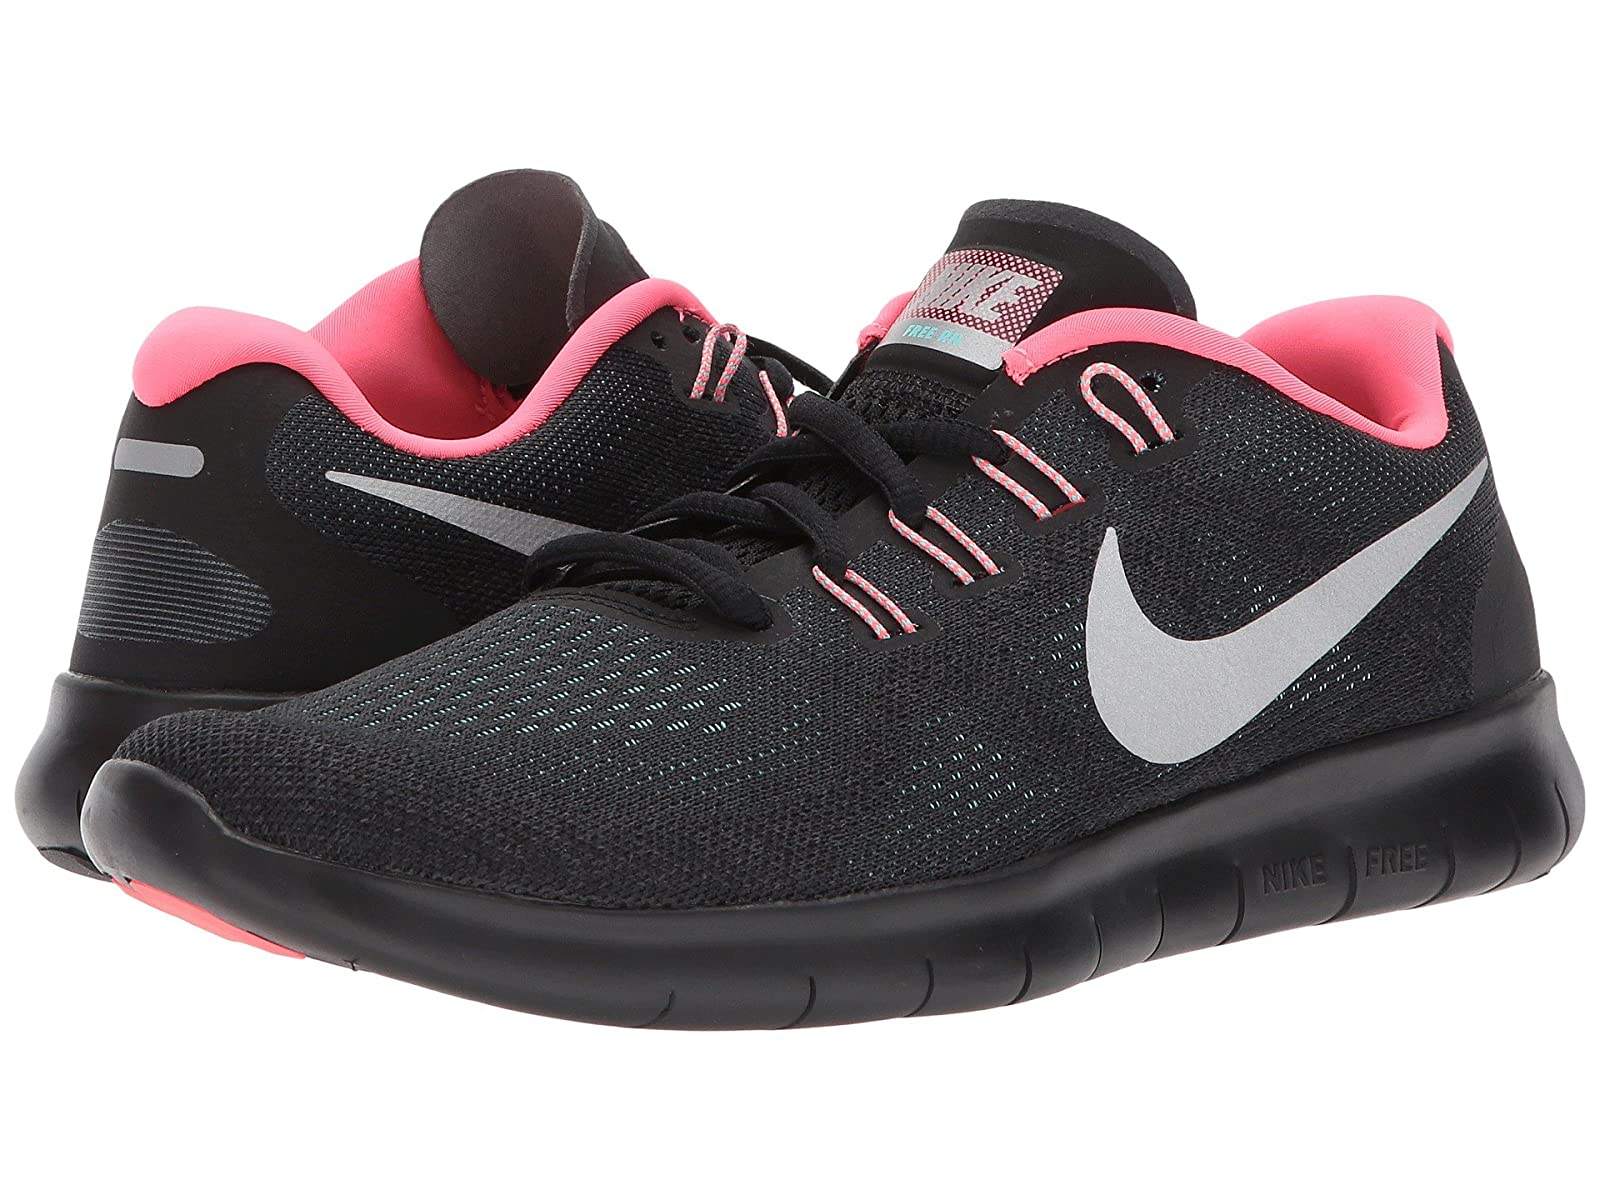 Nike Free RN 2017Cheap and distinctive eye-catching shoes